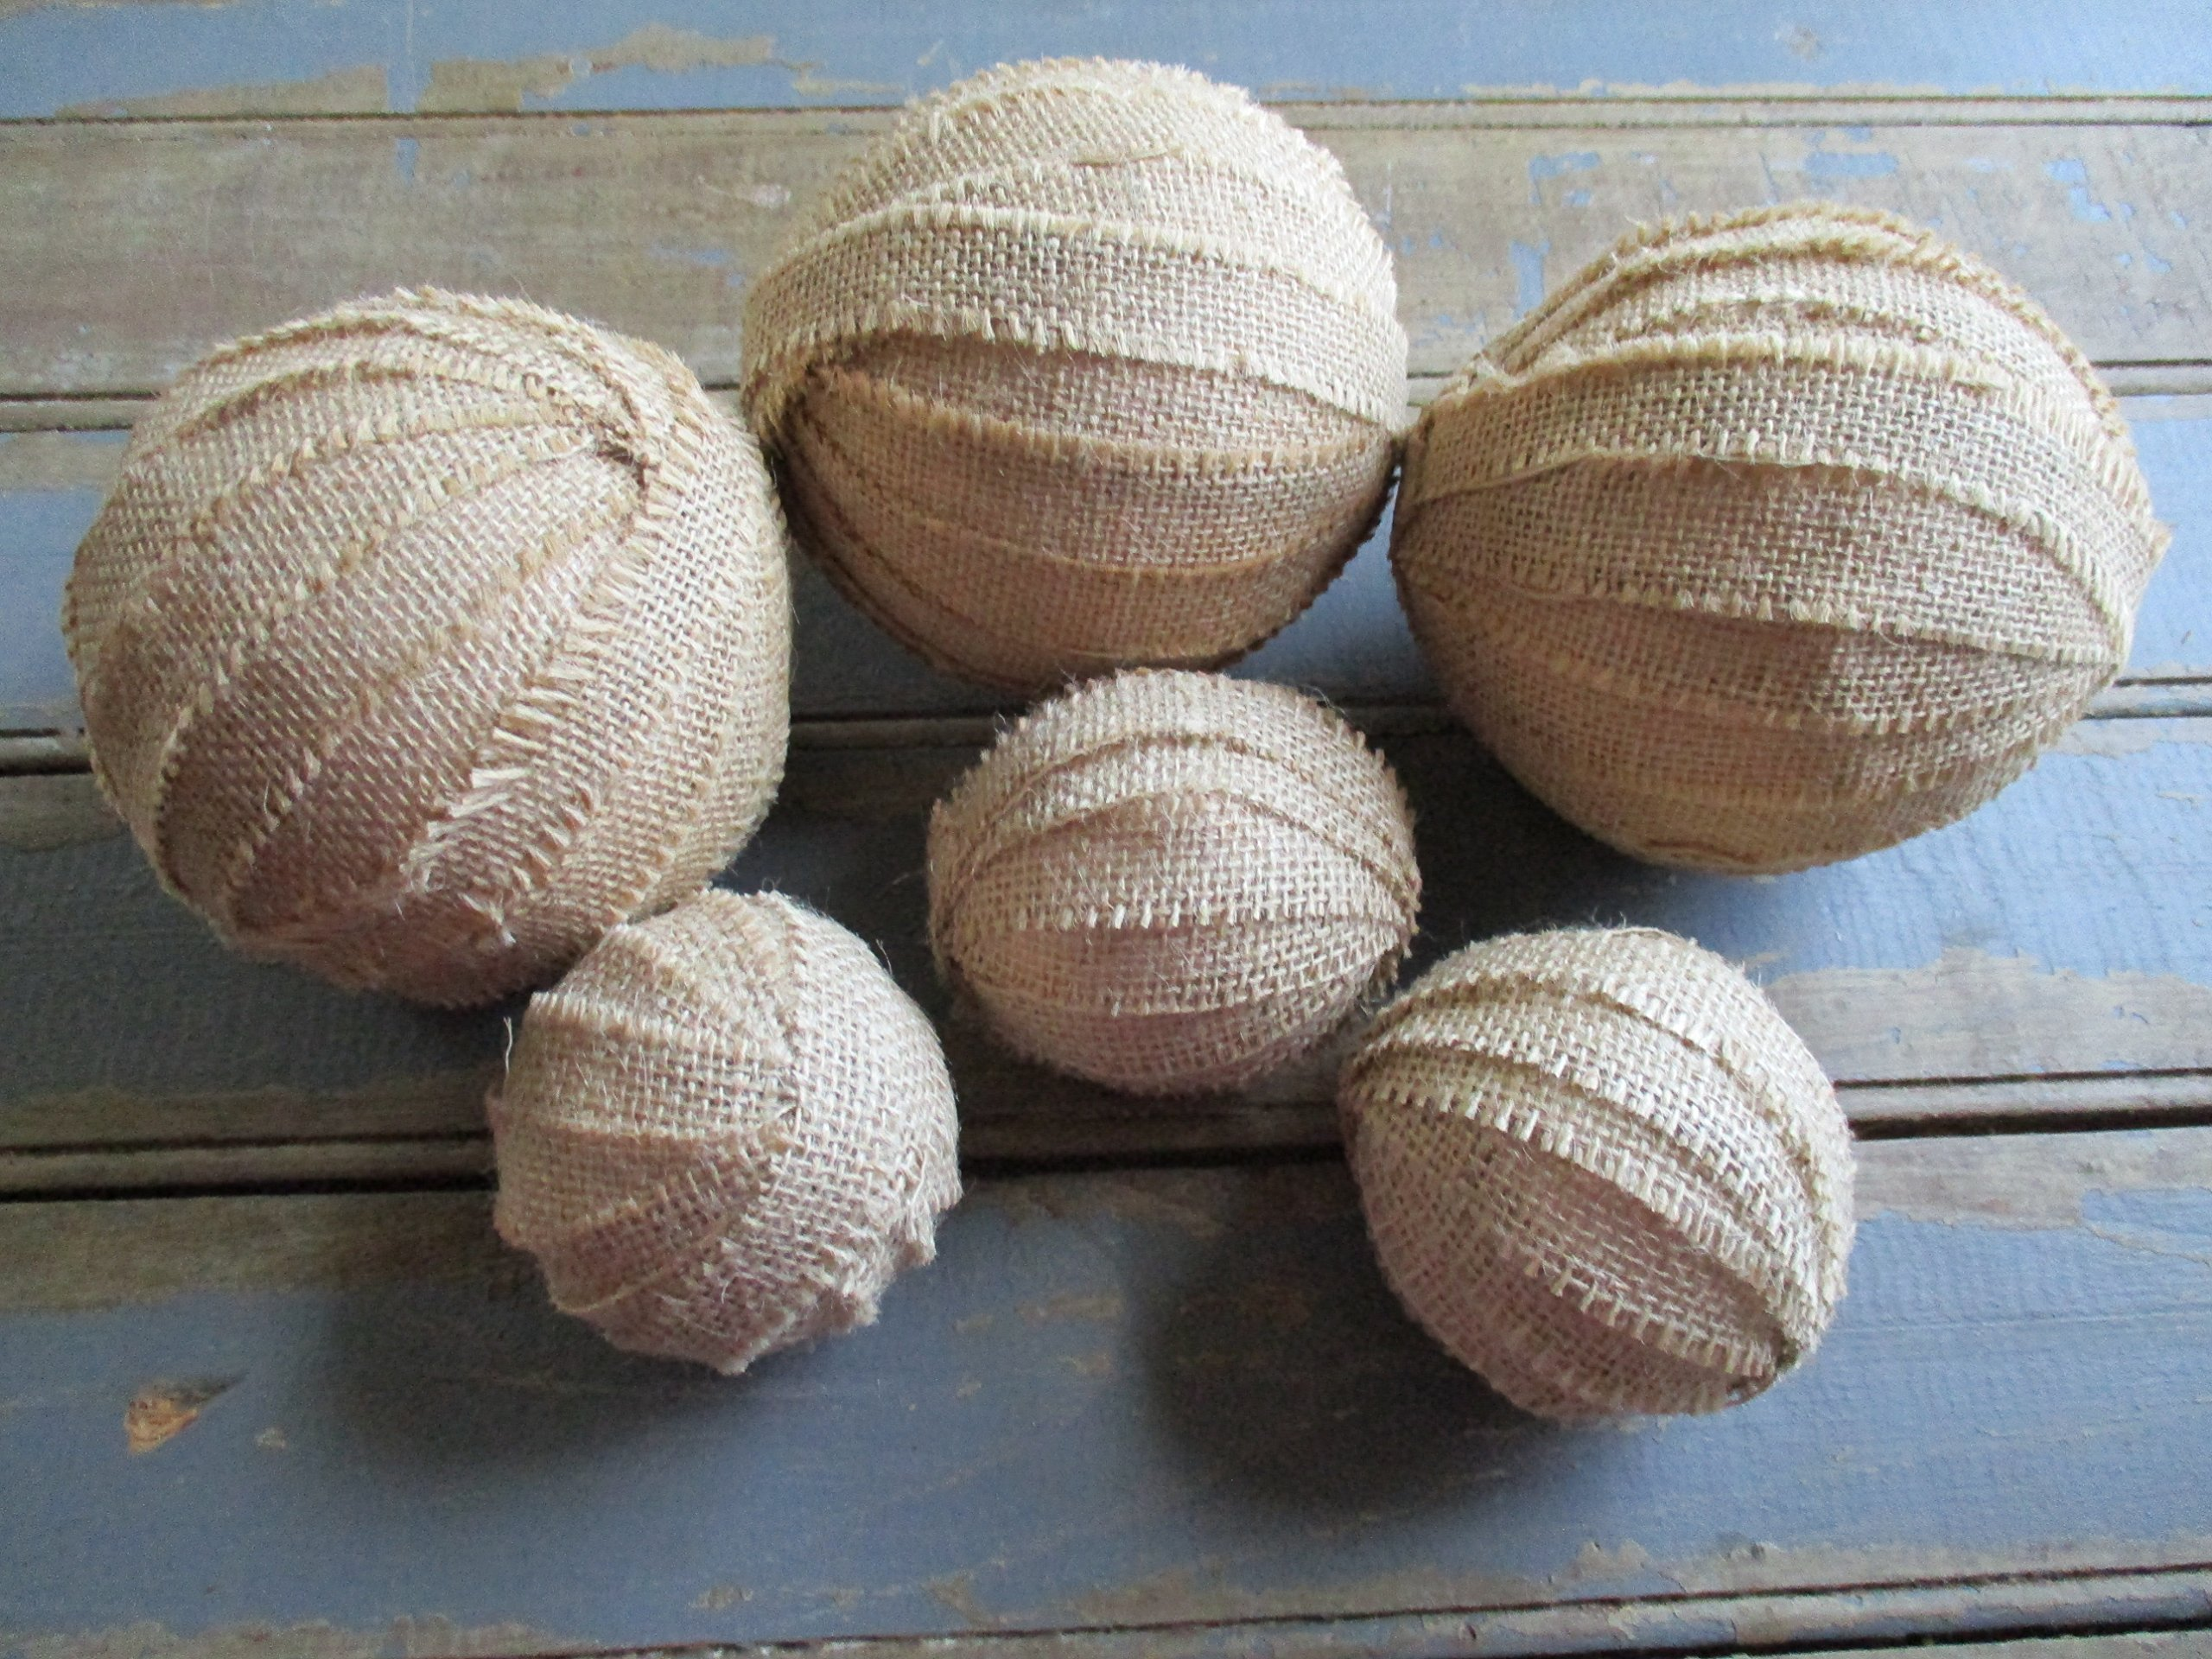 From The Attic Crafts Burlap Rag Balls Decorative Bowl Fillers 4 inch and 2.5 inch set of 6 by From The Attic Crafts (Image #5)